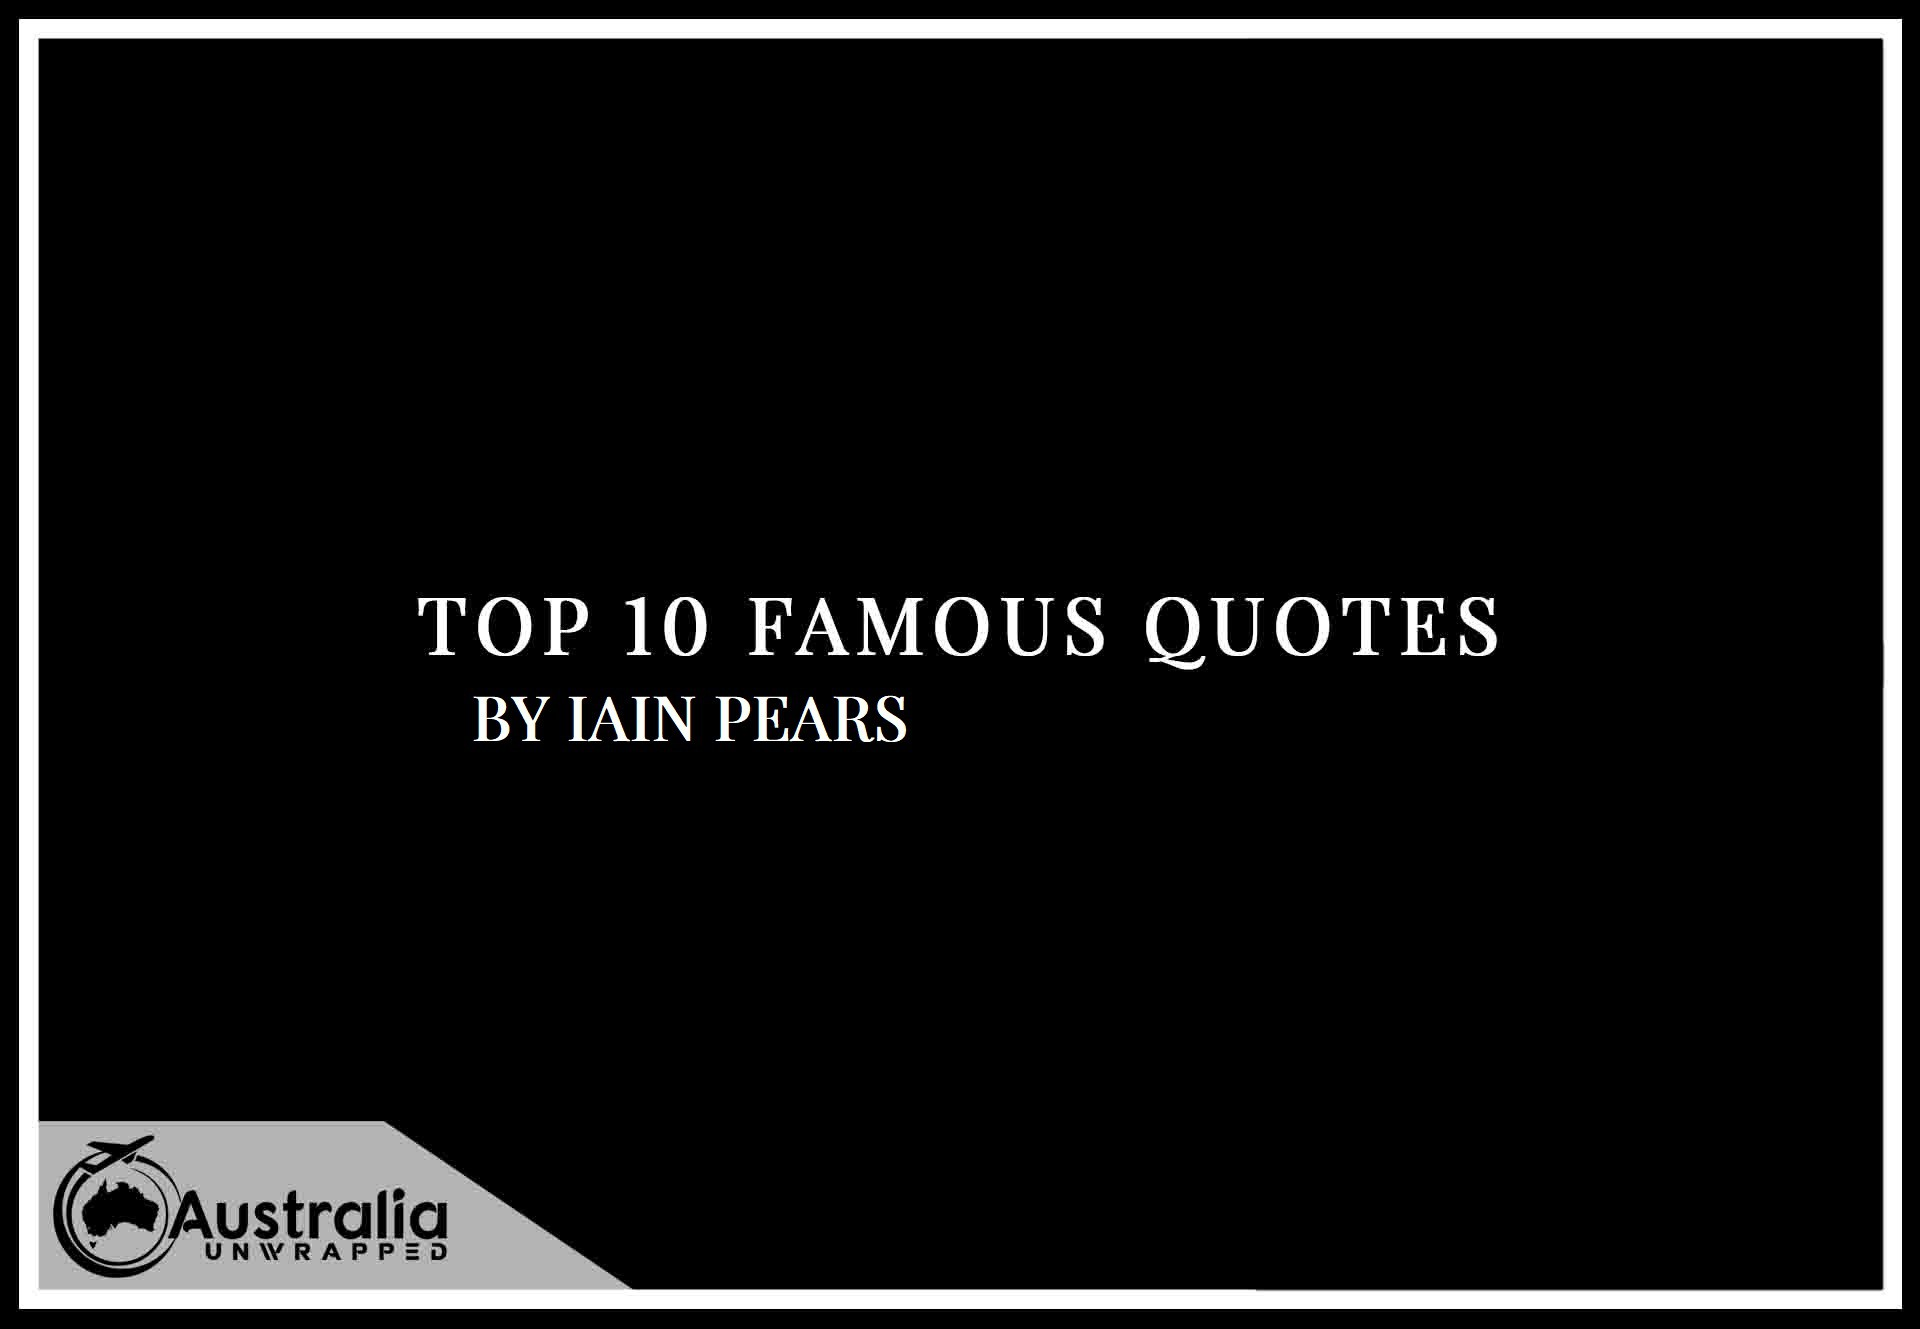 Top 10 Famous Quotes by Author Iain Pears